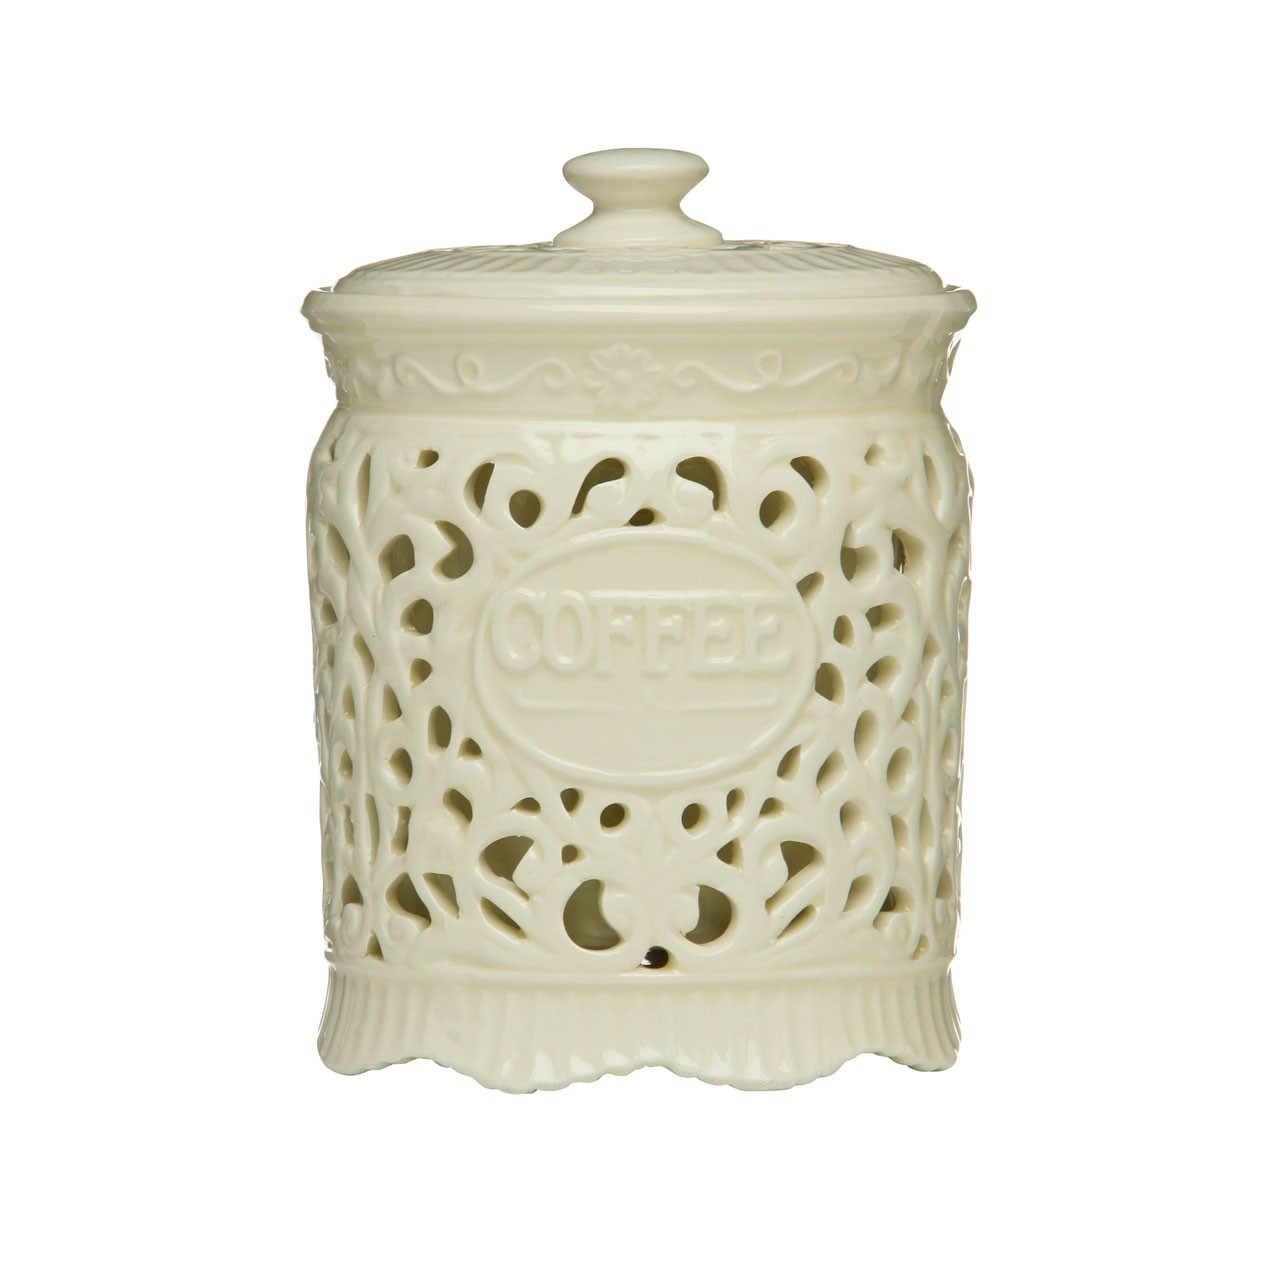 Ceramic Lace Coffee Canister, Cream Ceramic